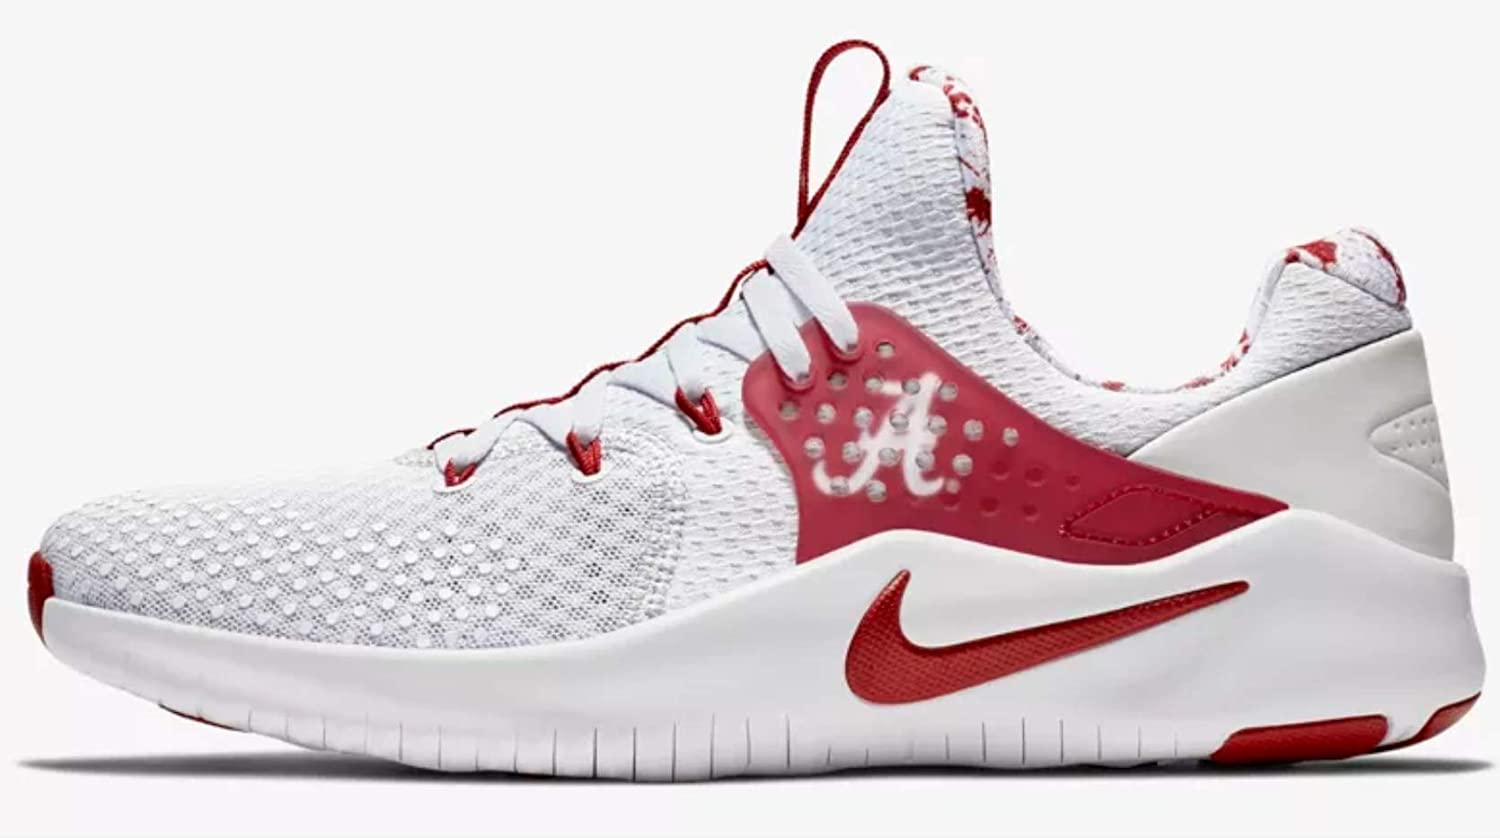 090b4c1b5a94 Amazon.com  Nike Men s Free TR 8 Alabama Training Shoes  Sports   Outdoors